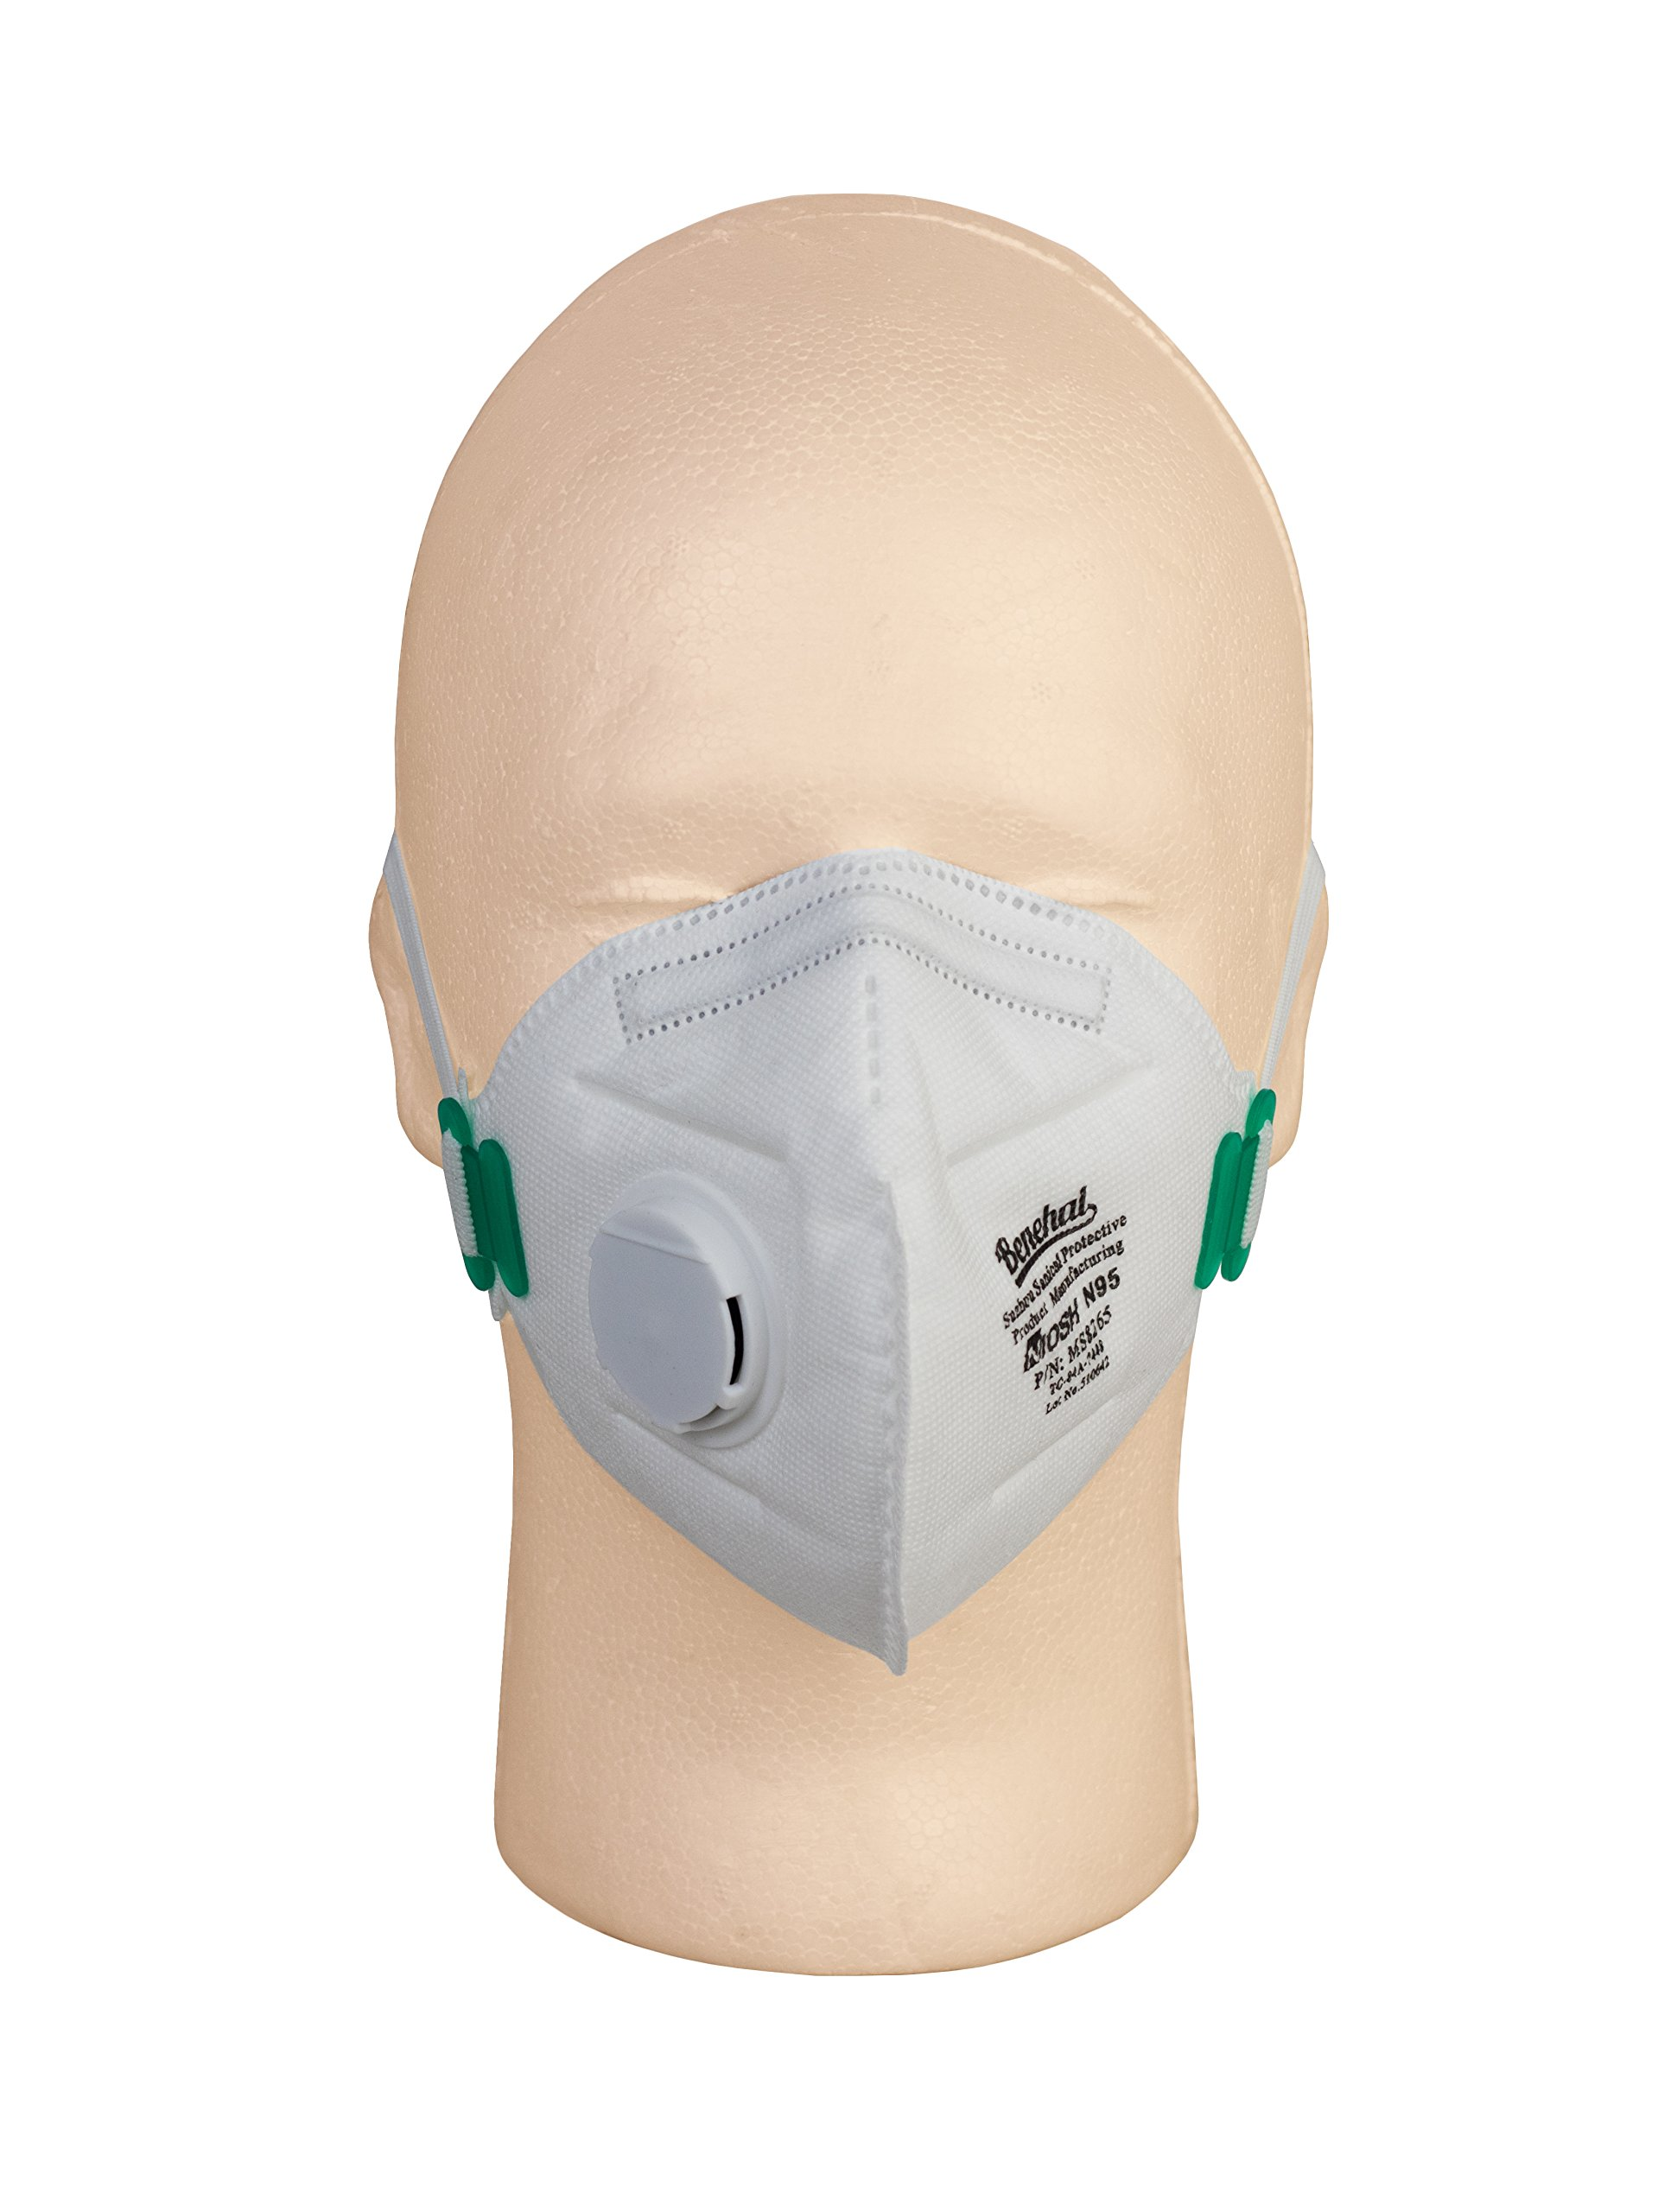 PneumaticPlus Benehal Respirator Disposable Dust Mask - NIOSH N95 Approved with Nose Clip and Exhaust Valve, Pack of 10